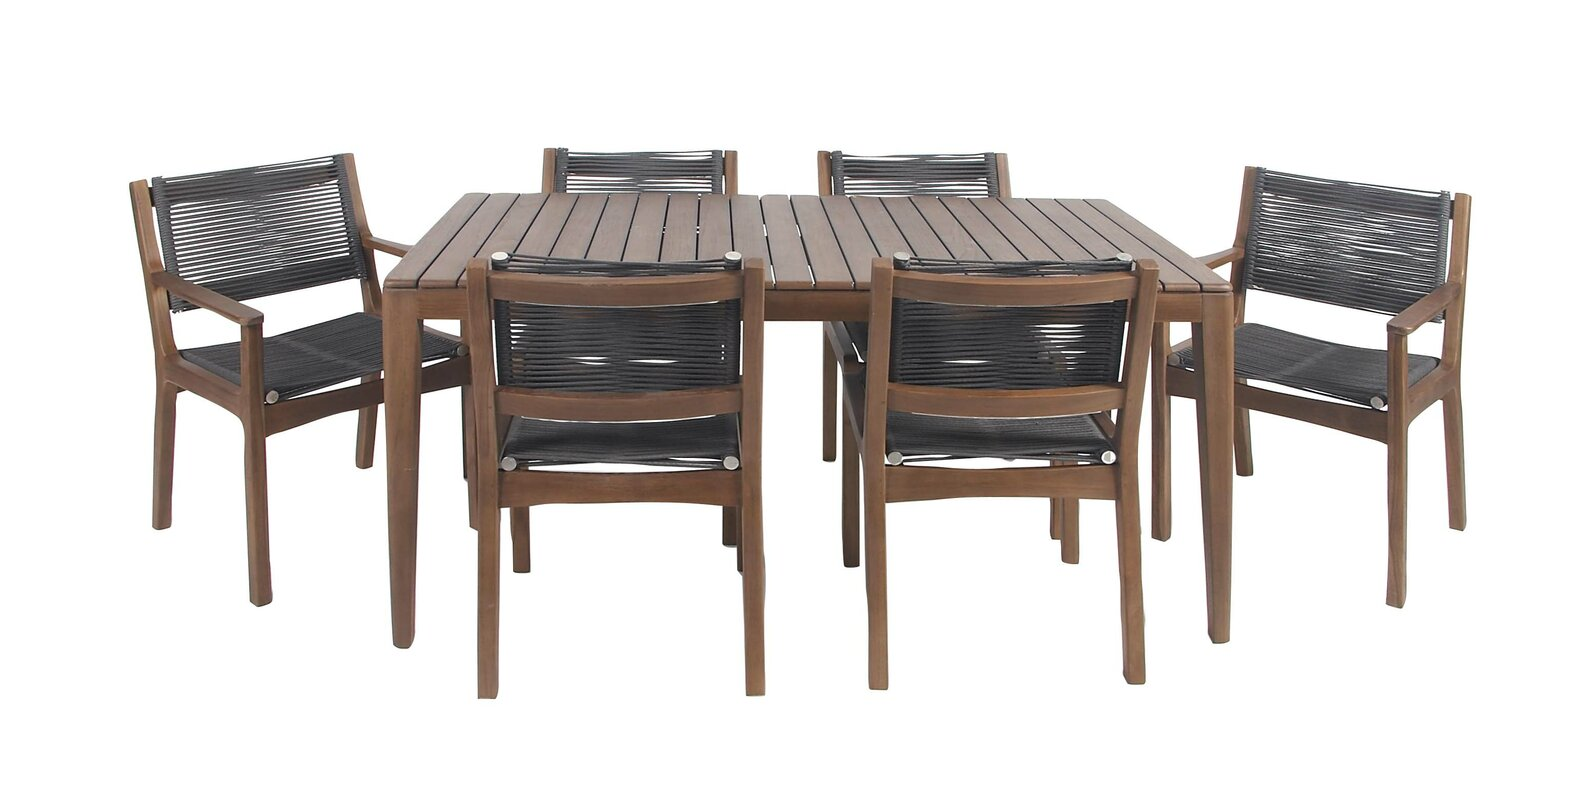 North La Junta Rustic Teak Wood And Stainless Steel 7 Piece Dining Set